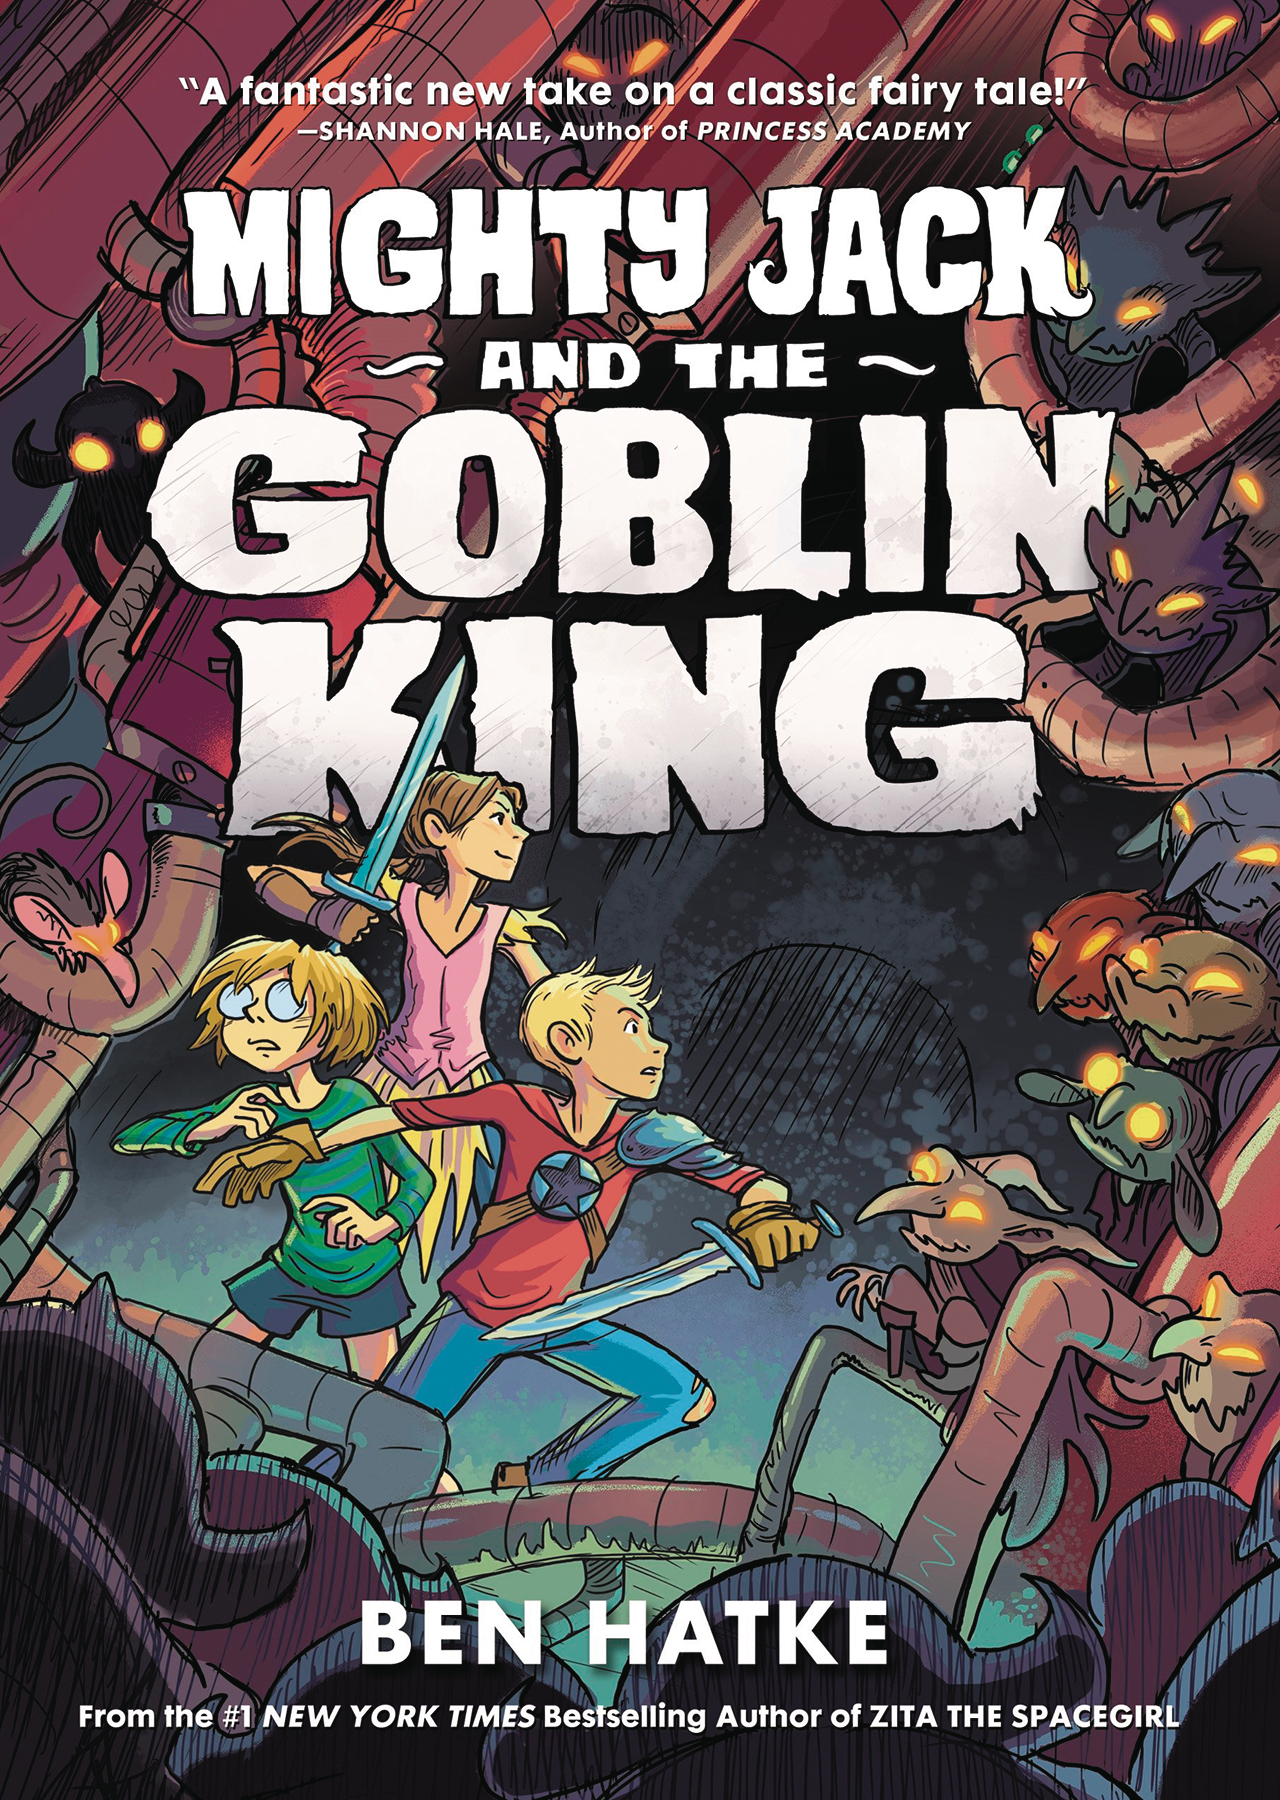 MIGHTY JACK & The GOBLIN KING (Ben HATKE) SC